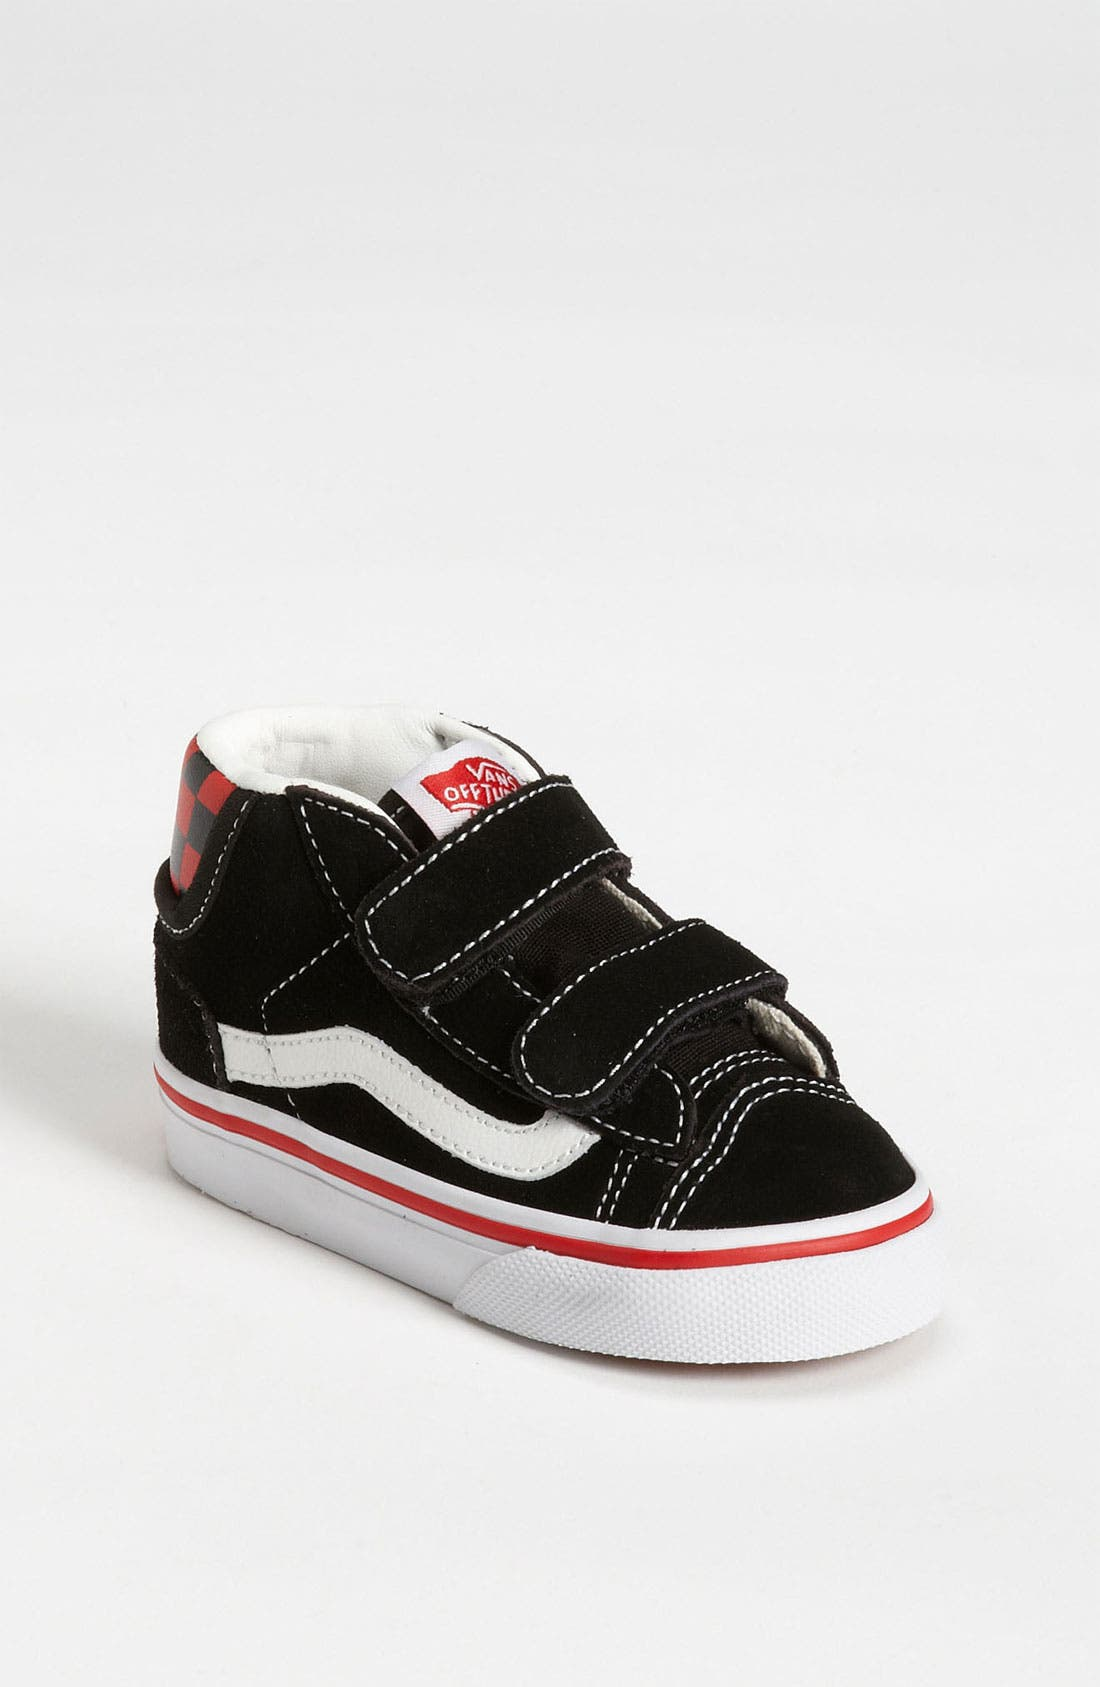 Alternate Image 1 Selected - Vans 'Mid Skool 77' Skate Shoe (Baby, Walker, Toddler, Little Kid & Big Kid)